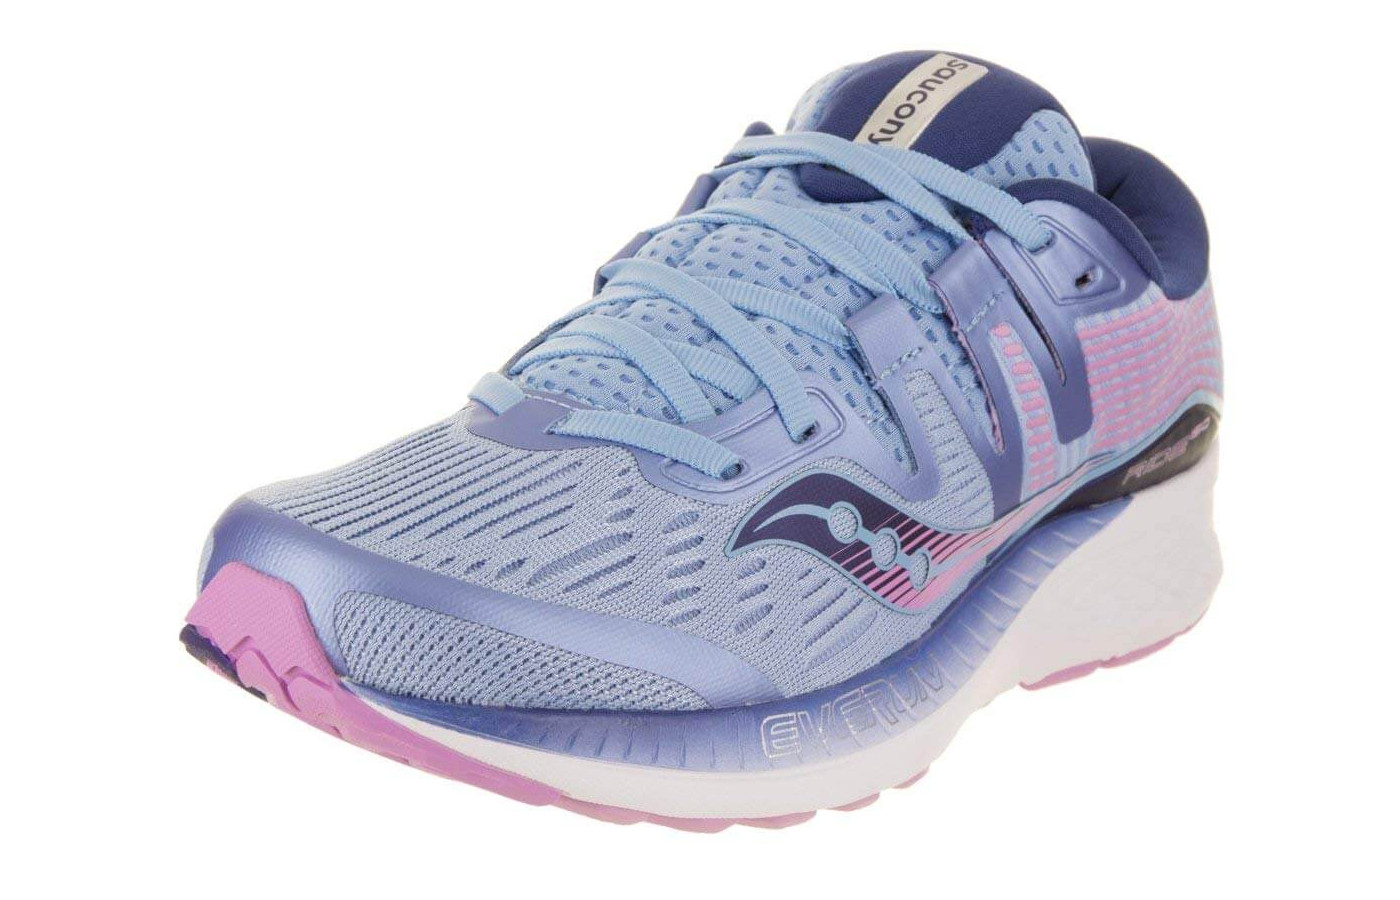 a47d28b701ed Saucony Ride ISO Reviewed - To Buy or Not in Apr 2019